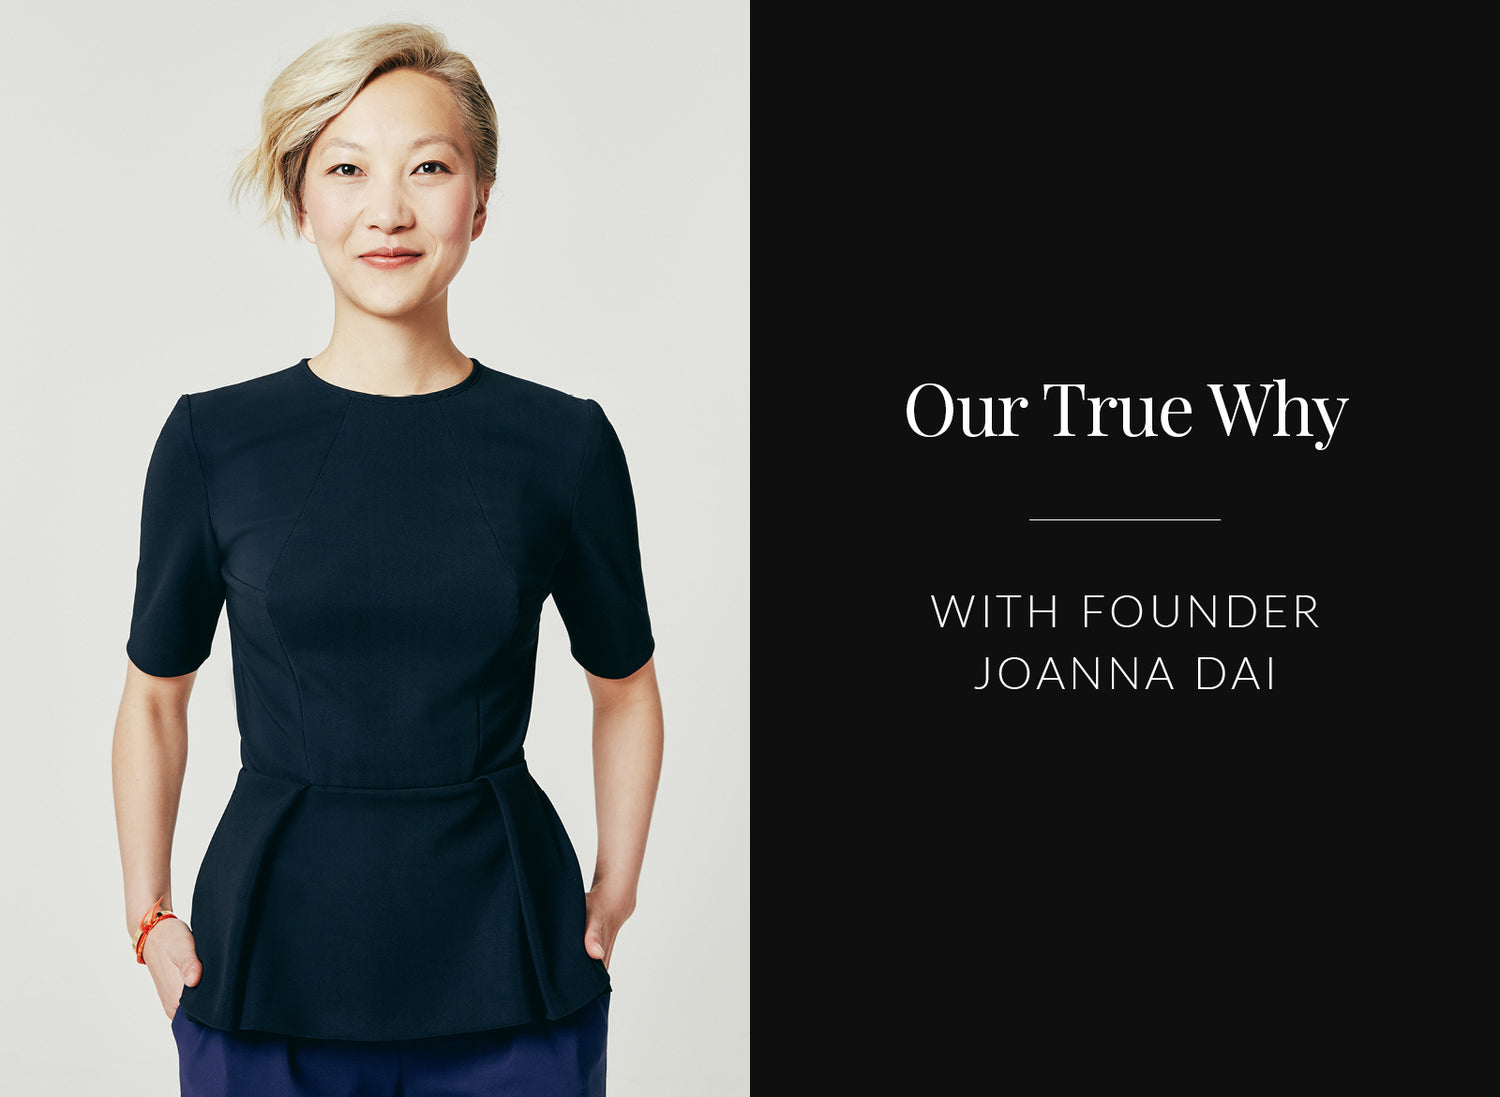 IWD 2020: Our True Why with Joanna Dai